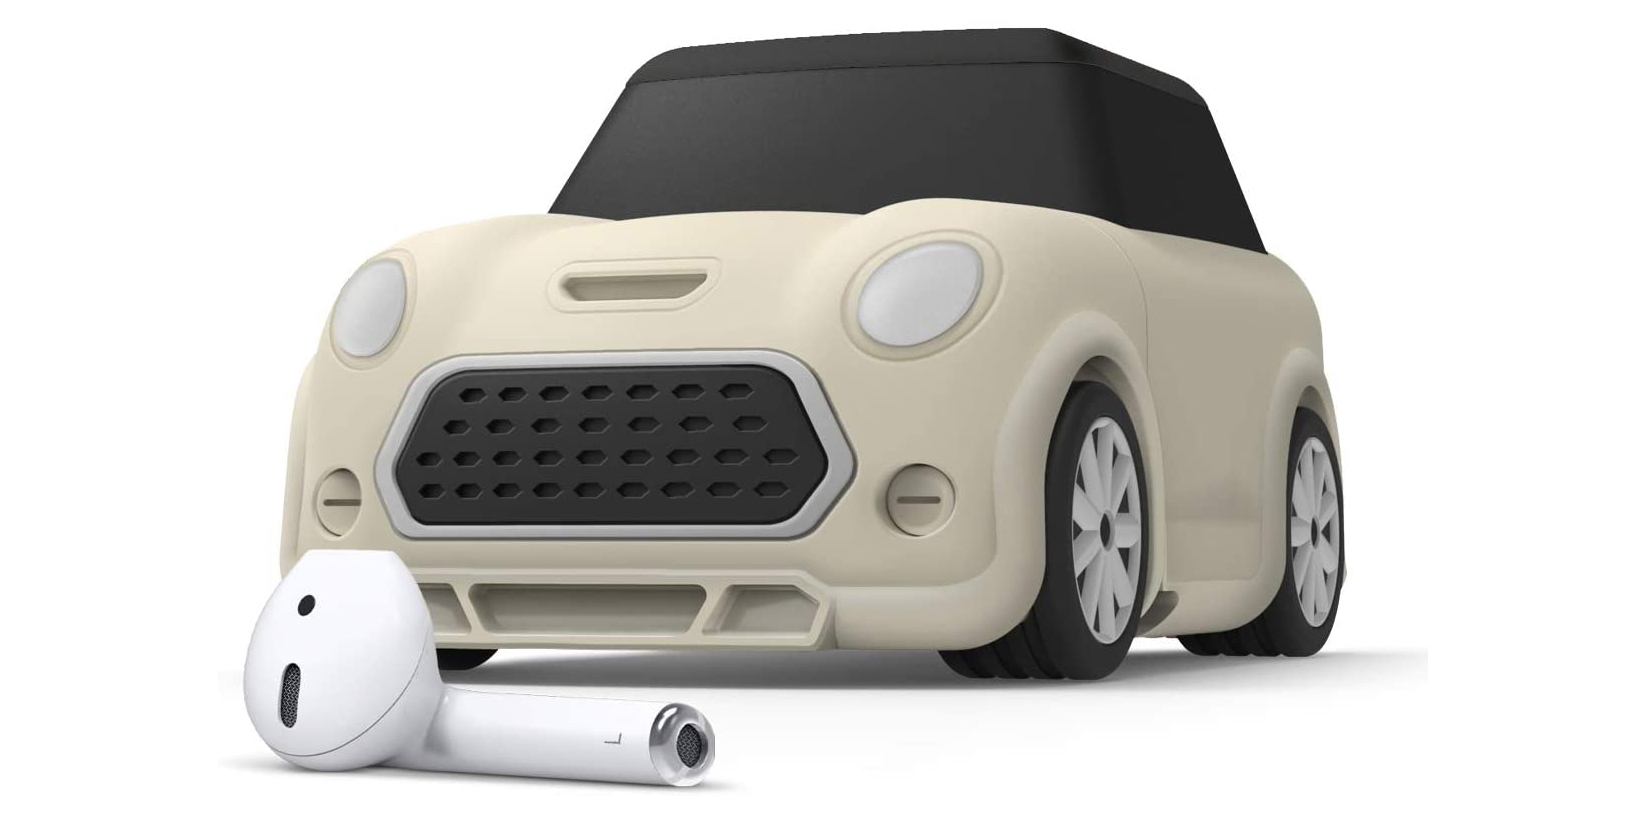 elago intros new AirPods case made to look like the iconic Mini car - 9to5Toys